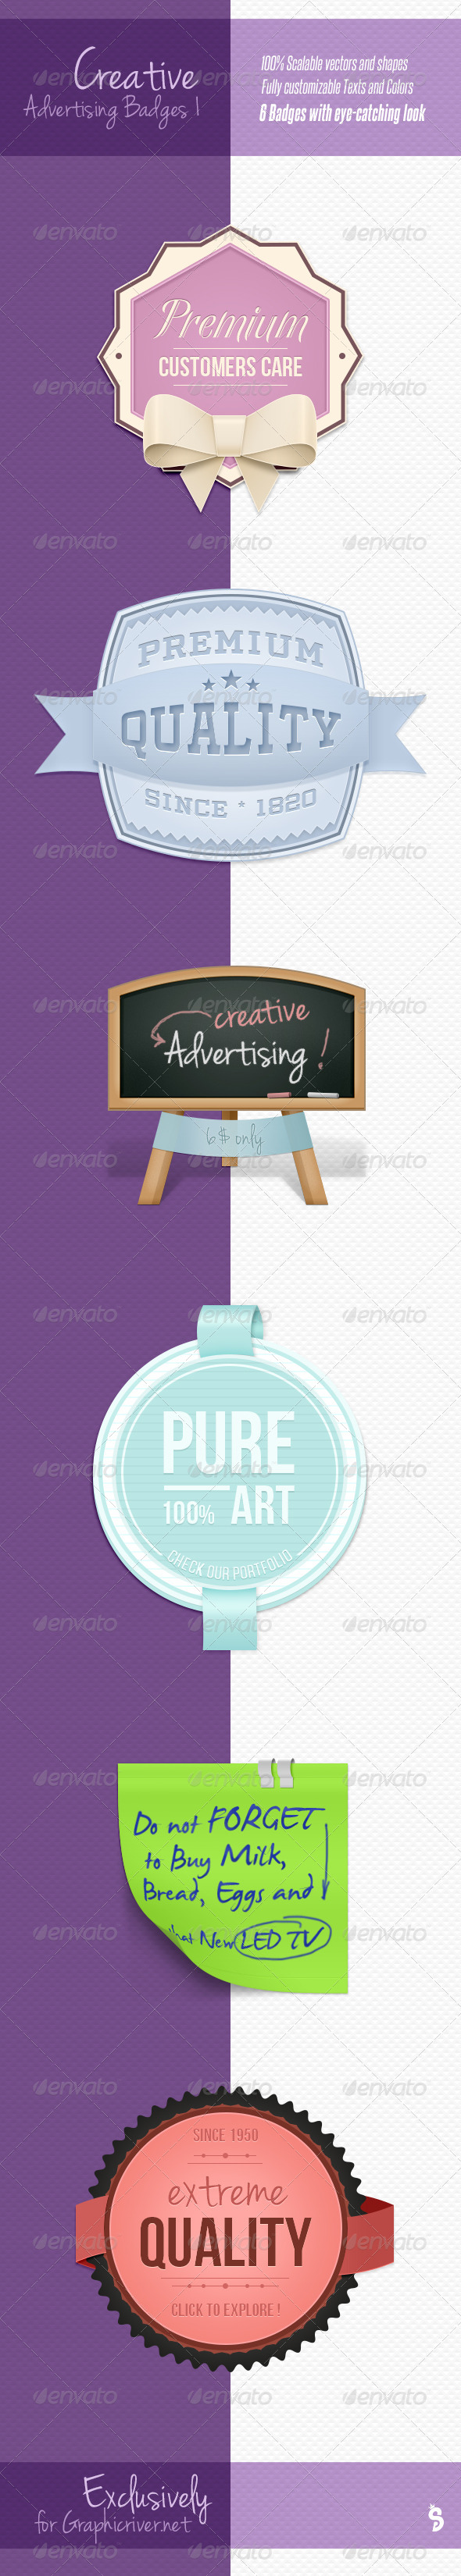 Creative Advertising Badges 1 - Badges & Stickers Web Elements